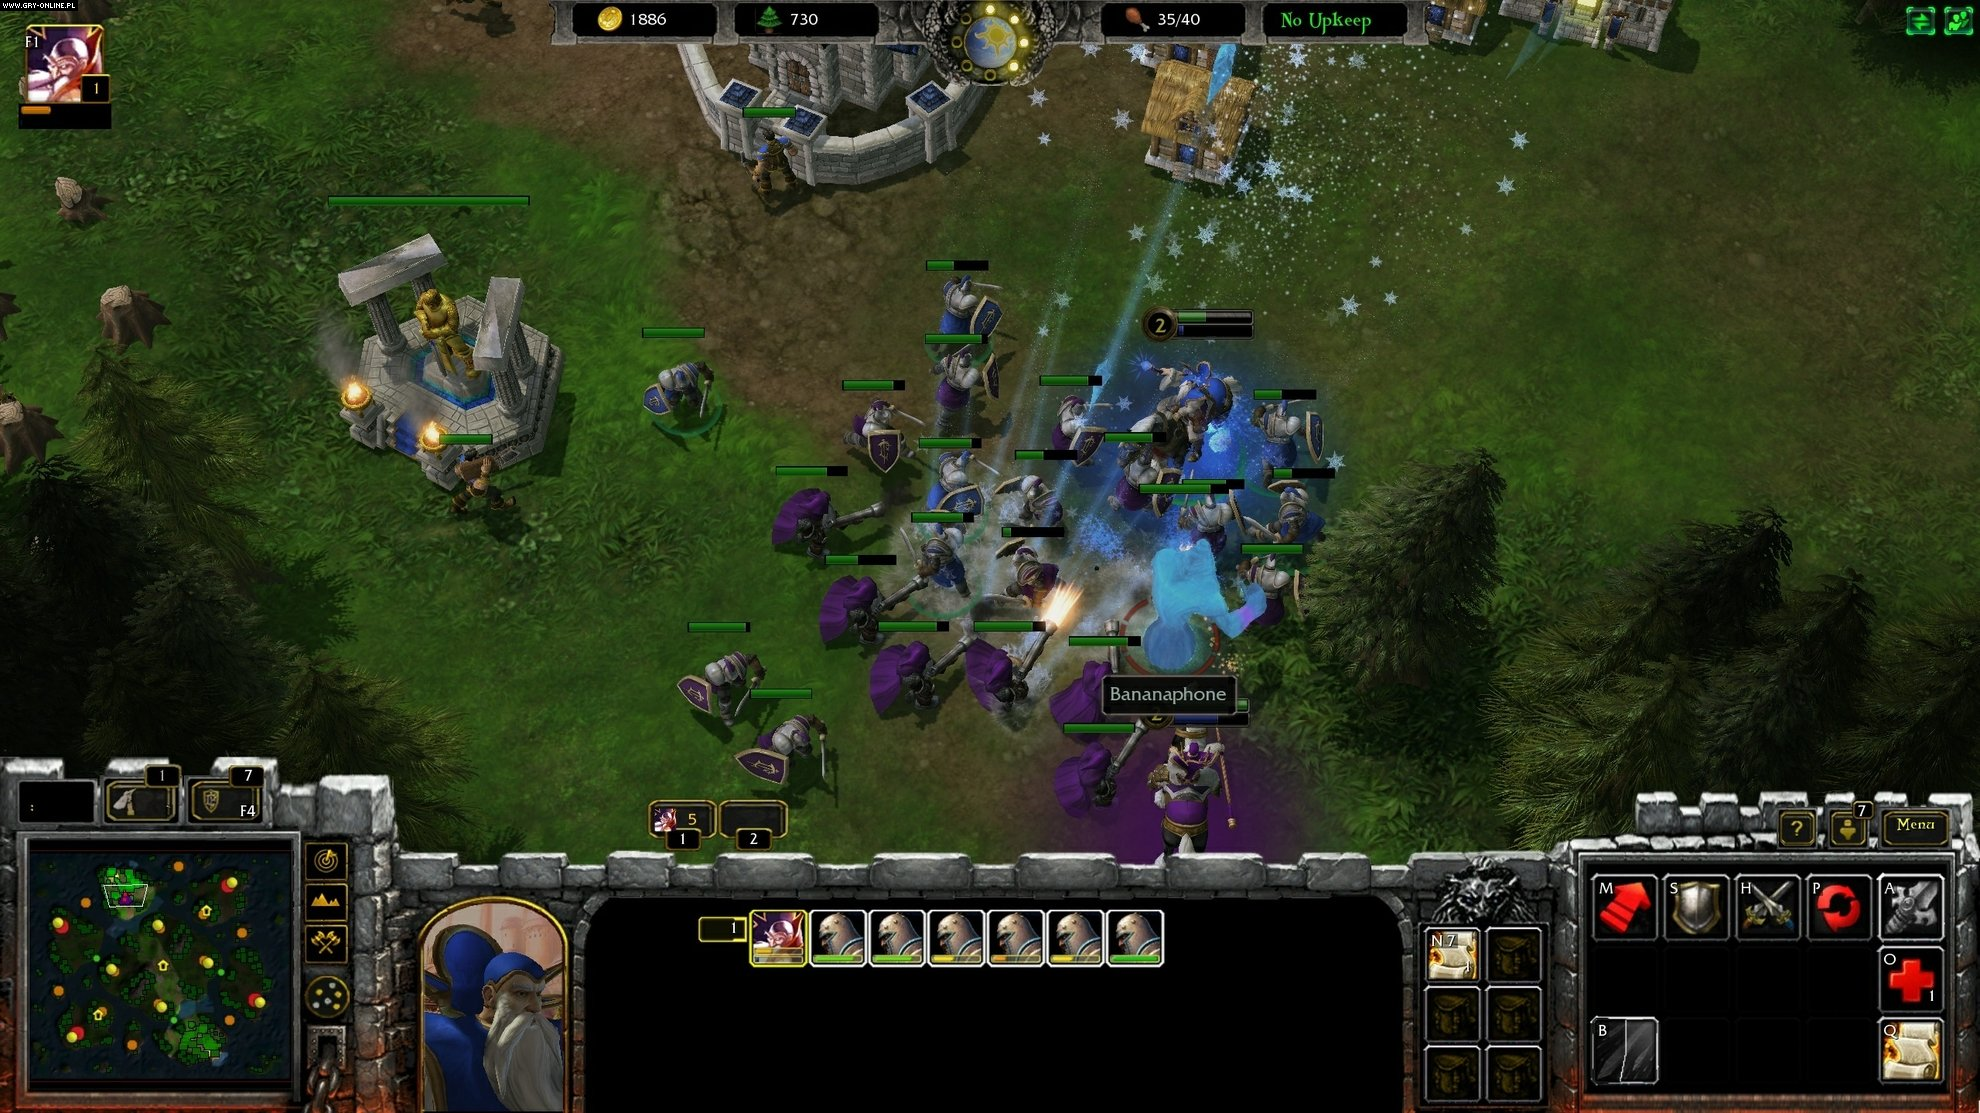 Download map warcraft fuckgirl screen shot smut clips